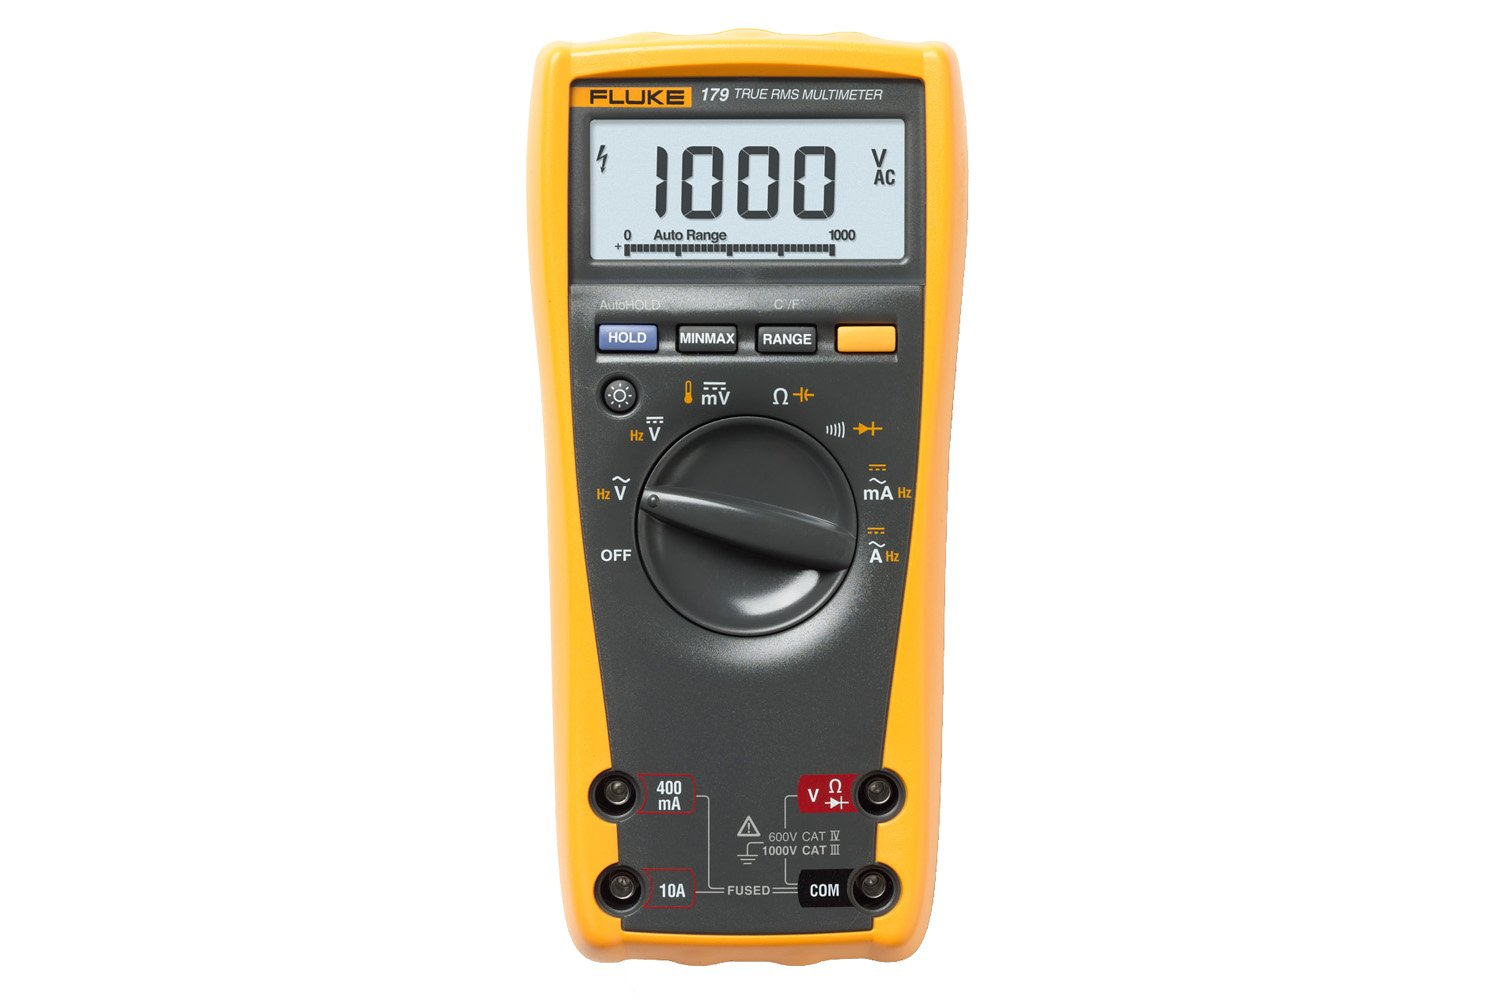 Fluke 179 True-RMS Digital Multimeter | Fluke